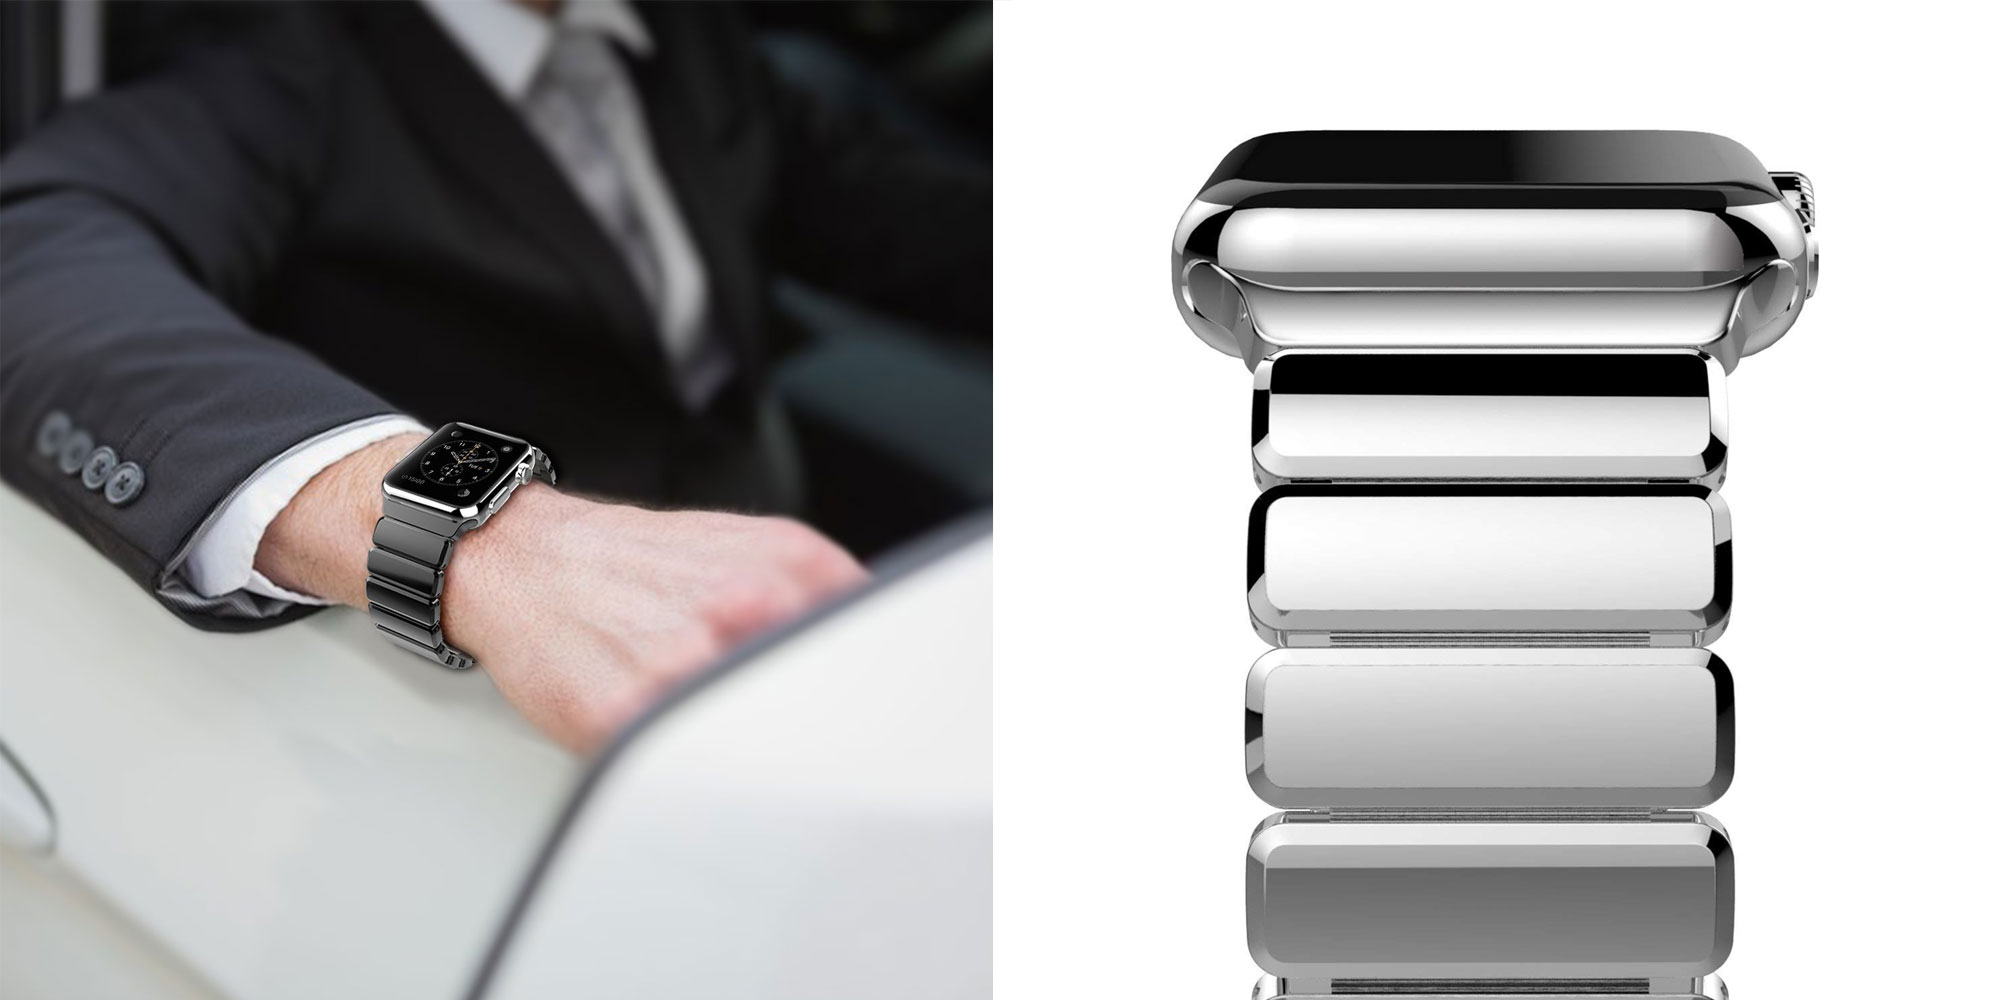 This Apple Watch band looks like the official Link Bracelet for a fraction of the price: $19